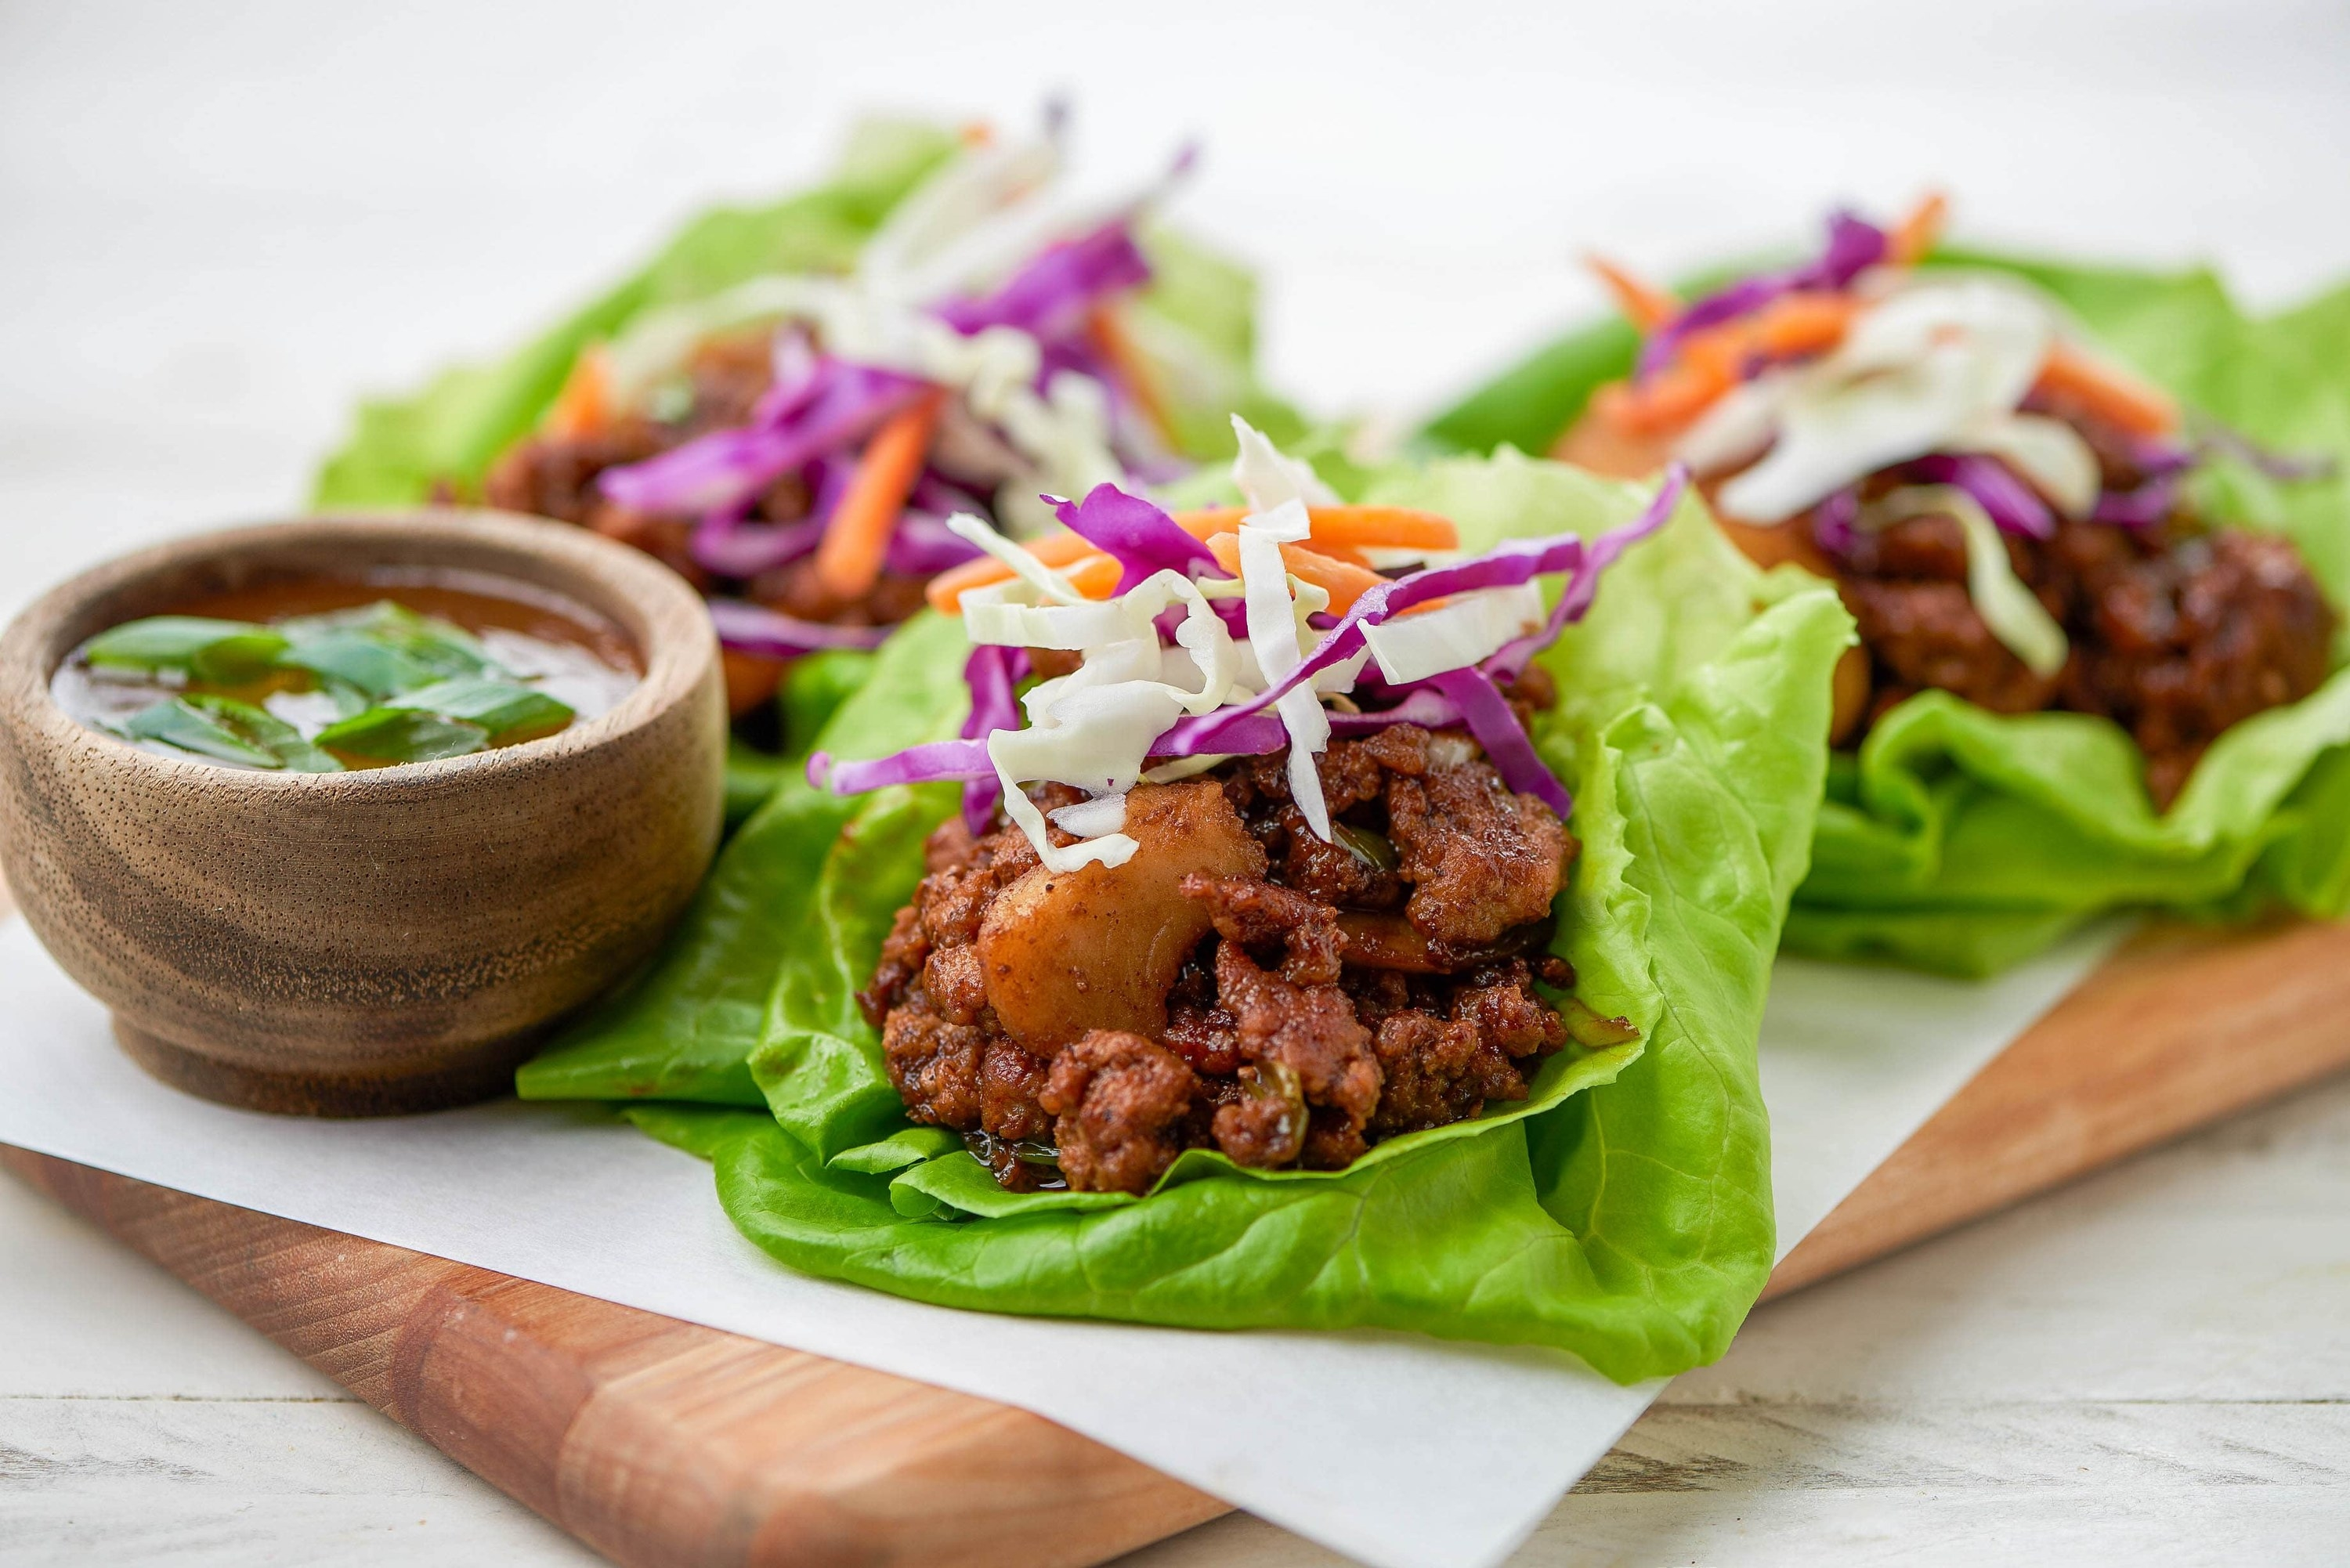 Lettuce cups with cabbage and sauce